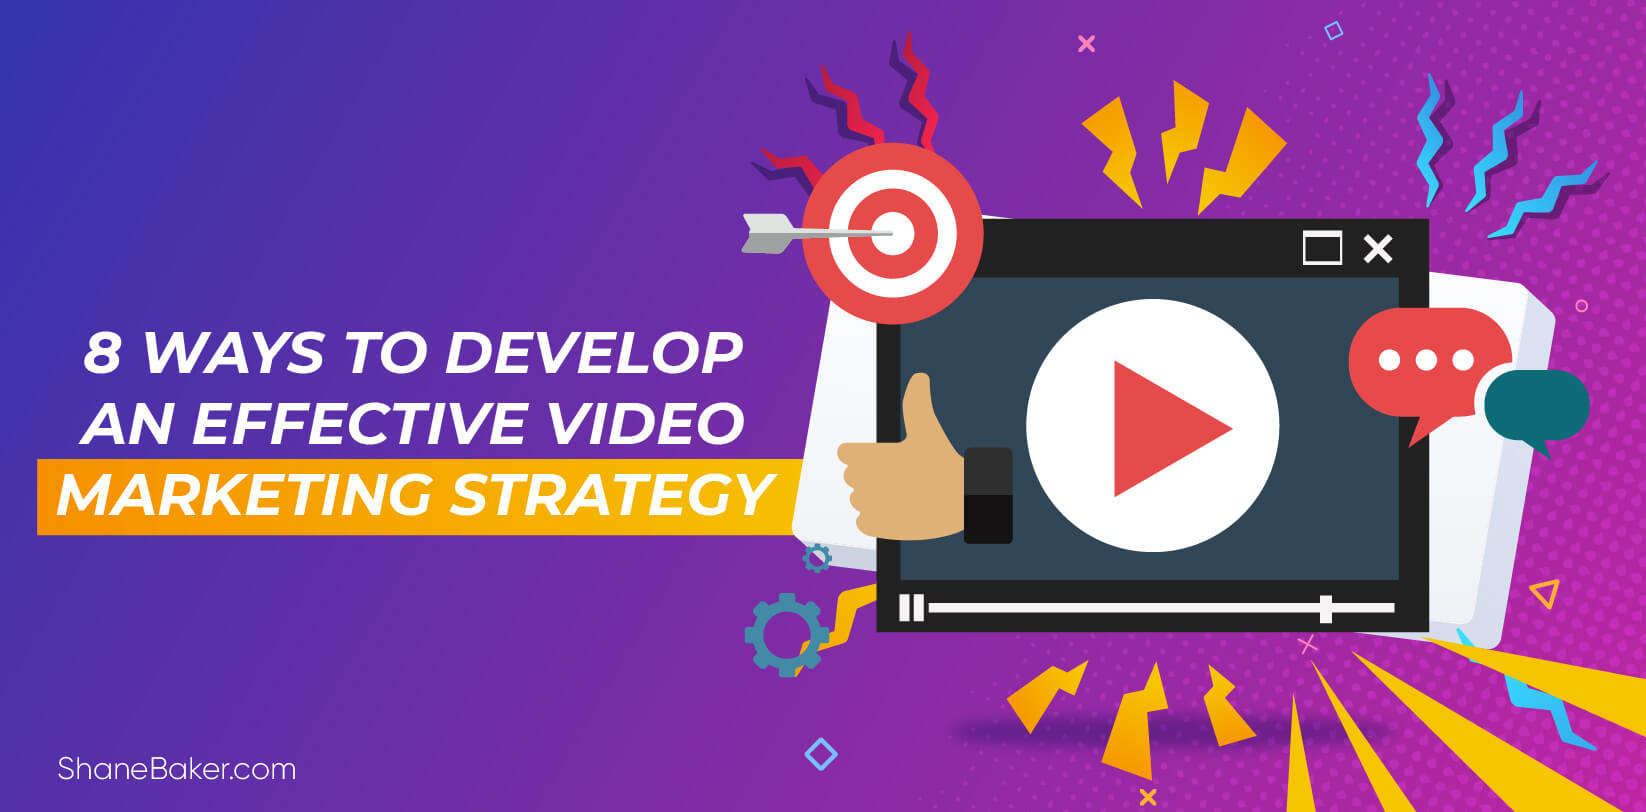 8-Ways-to-Develop-an-Effective-Video-Marketing-Strategy.jpg